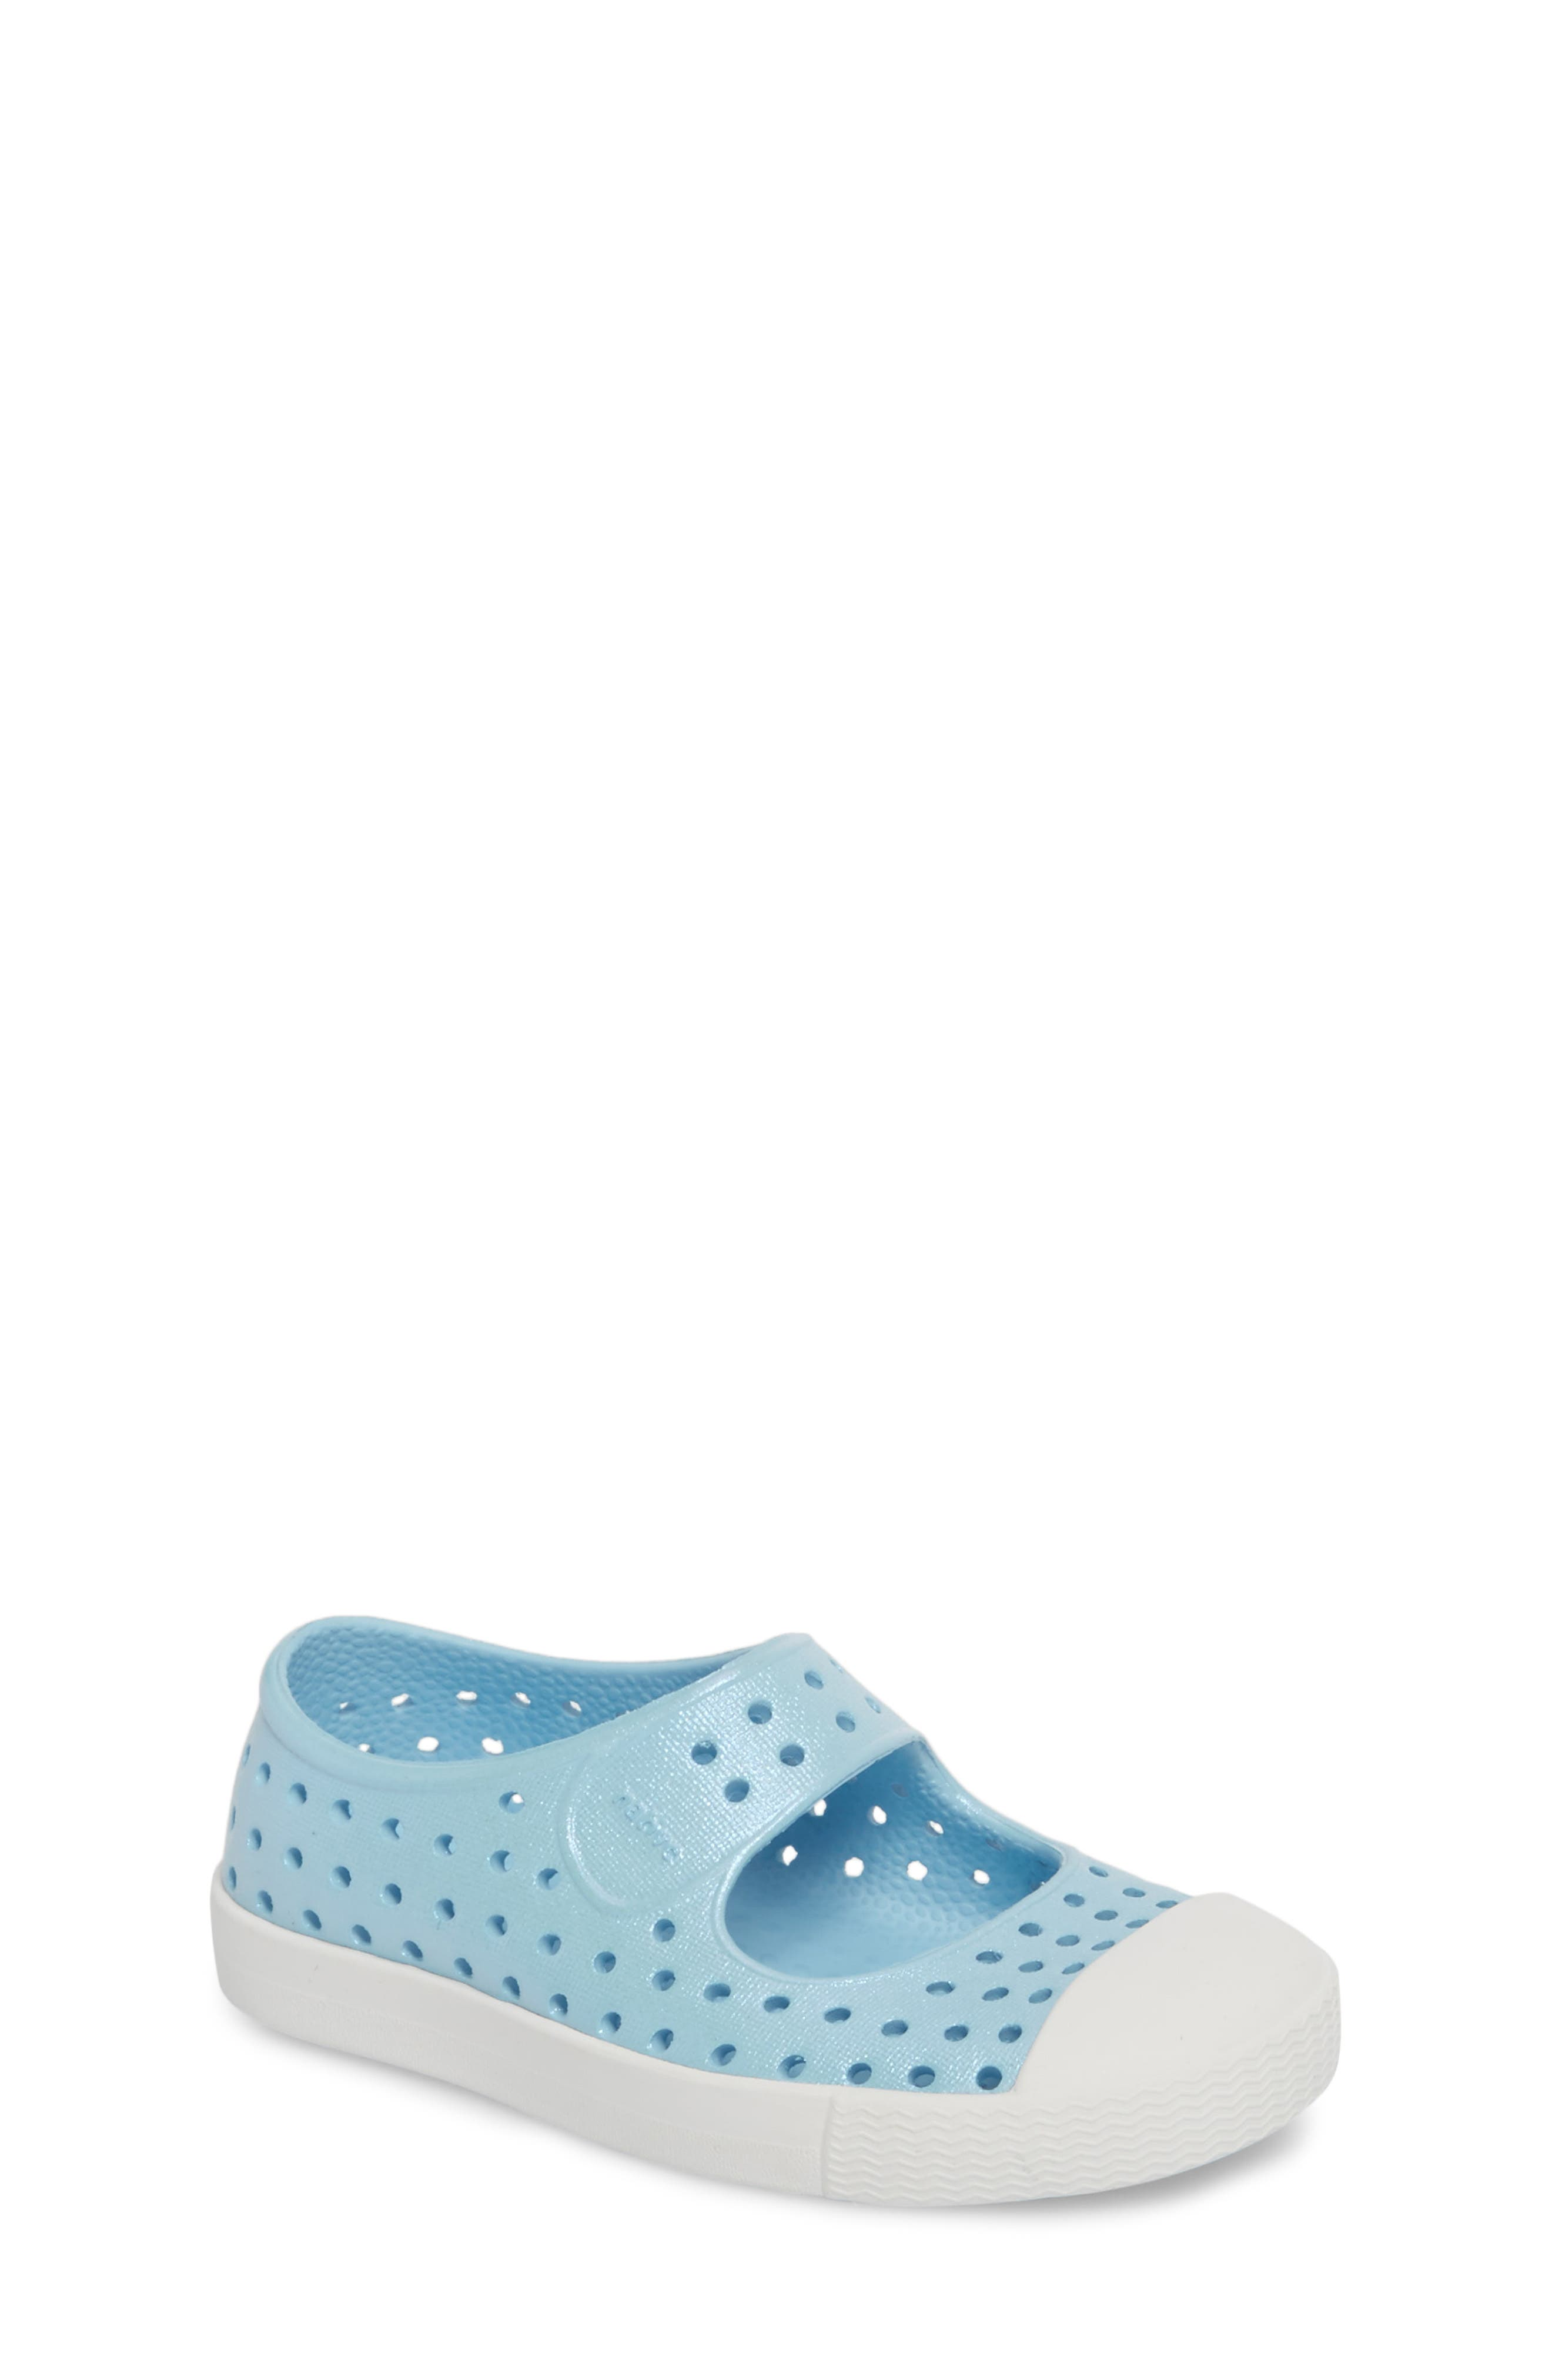 Juniper Perforated Mary Jane,                         Main,                         color, 464